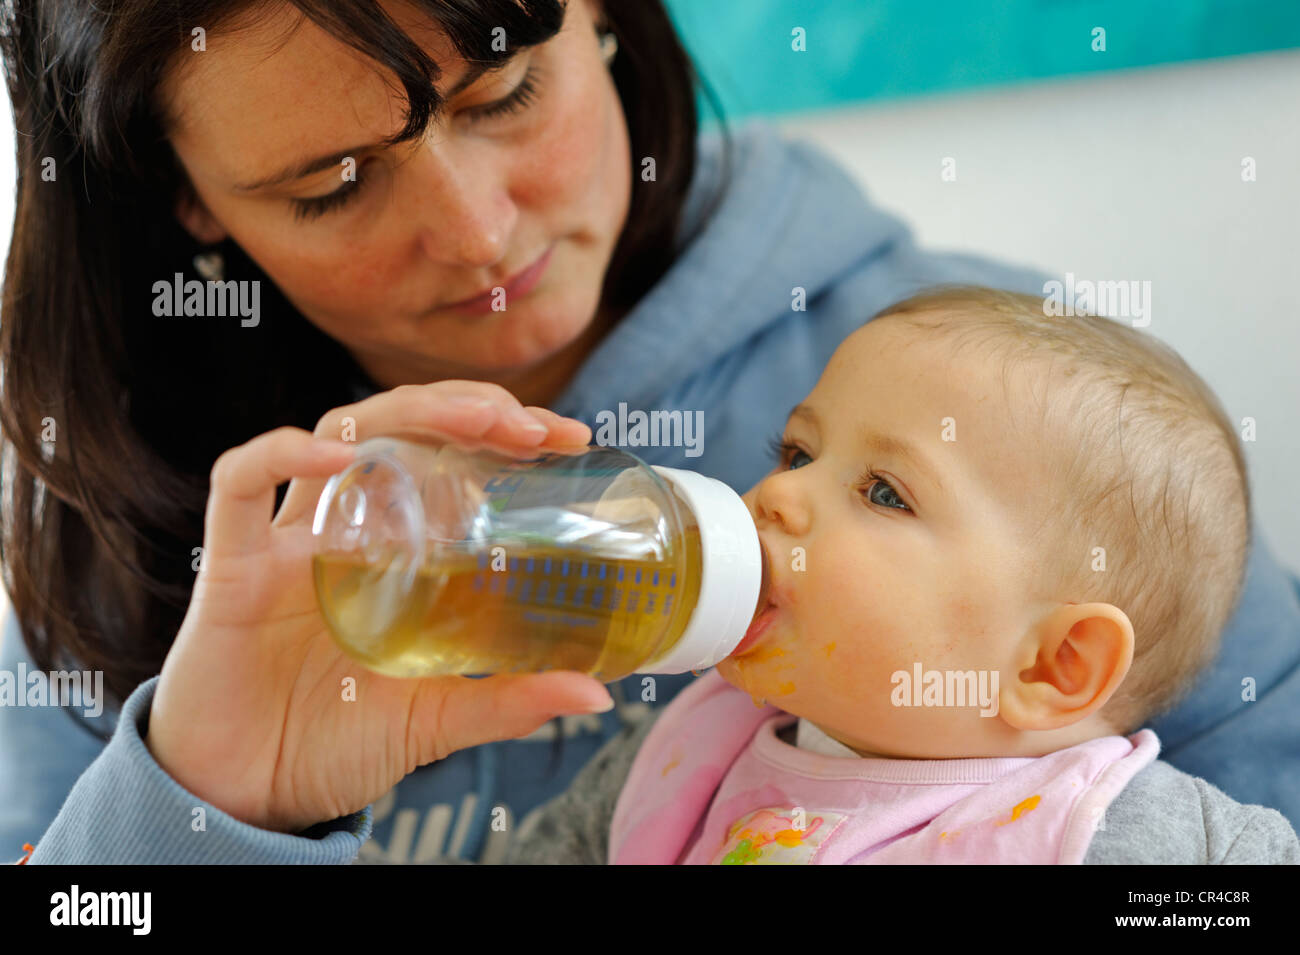 Baby, six months, drinking from a bottle held by its mother - Stock Image